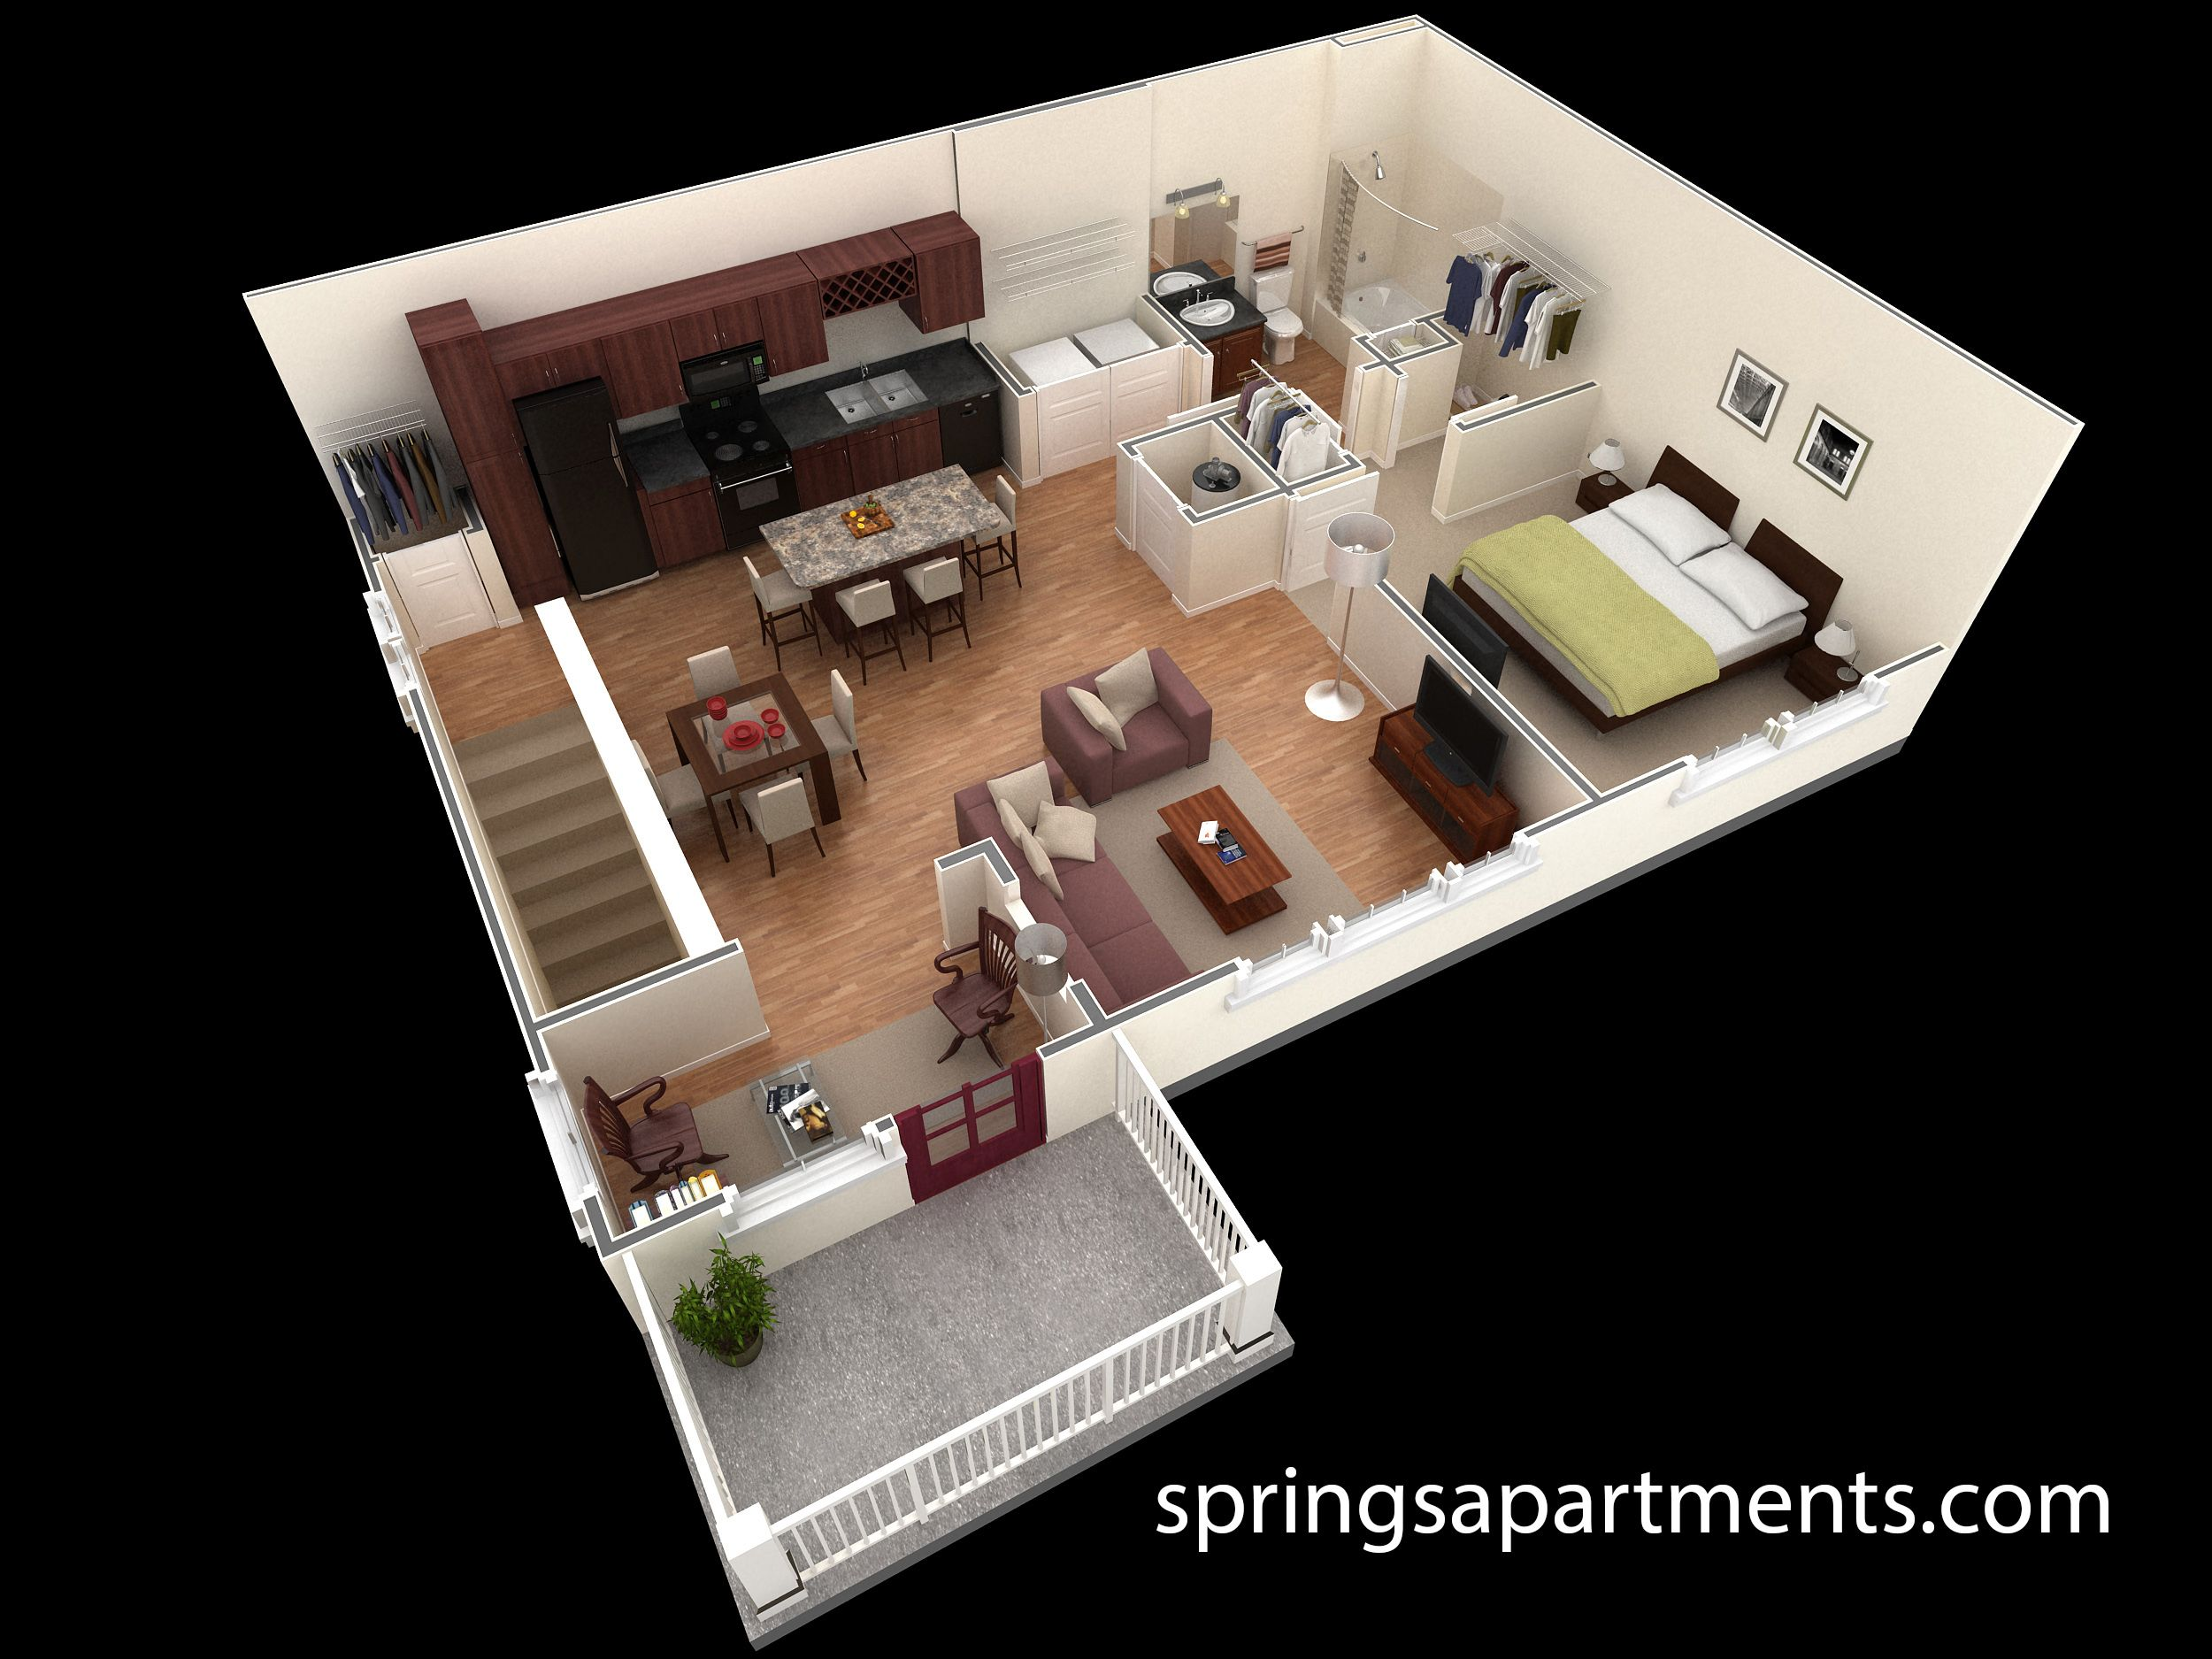 1 Bedroom 1 Bath 909 Sf At Springs At Creekside This 1 Bedroom Grand Overlook Apartment Comes W One Bedroom House Plans One Bedroom House Bedroom House Plans